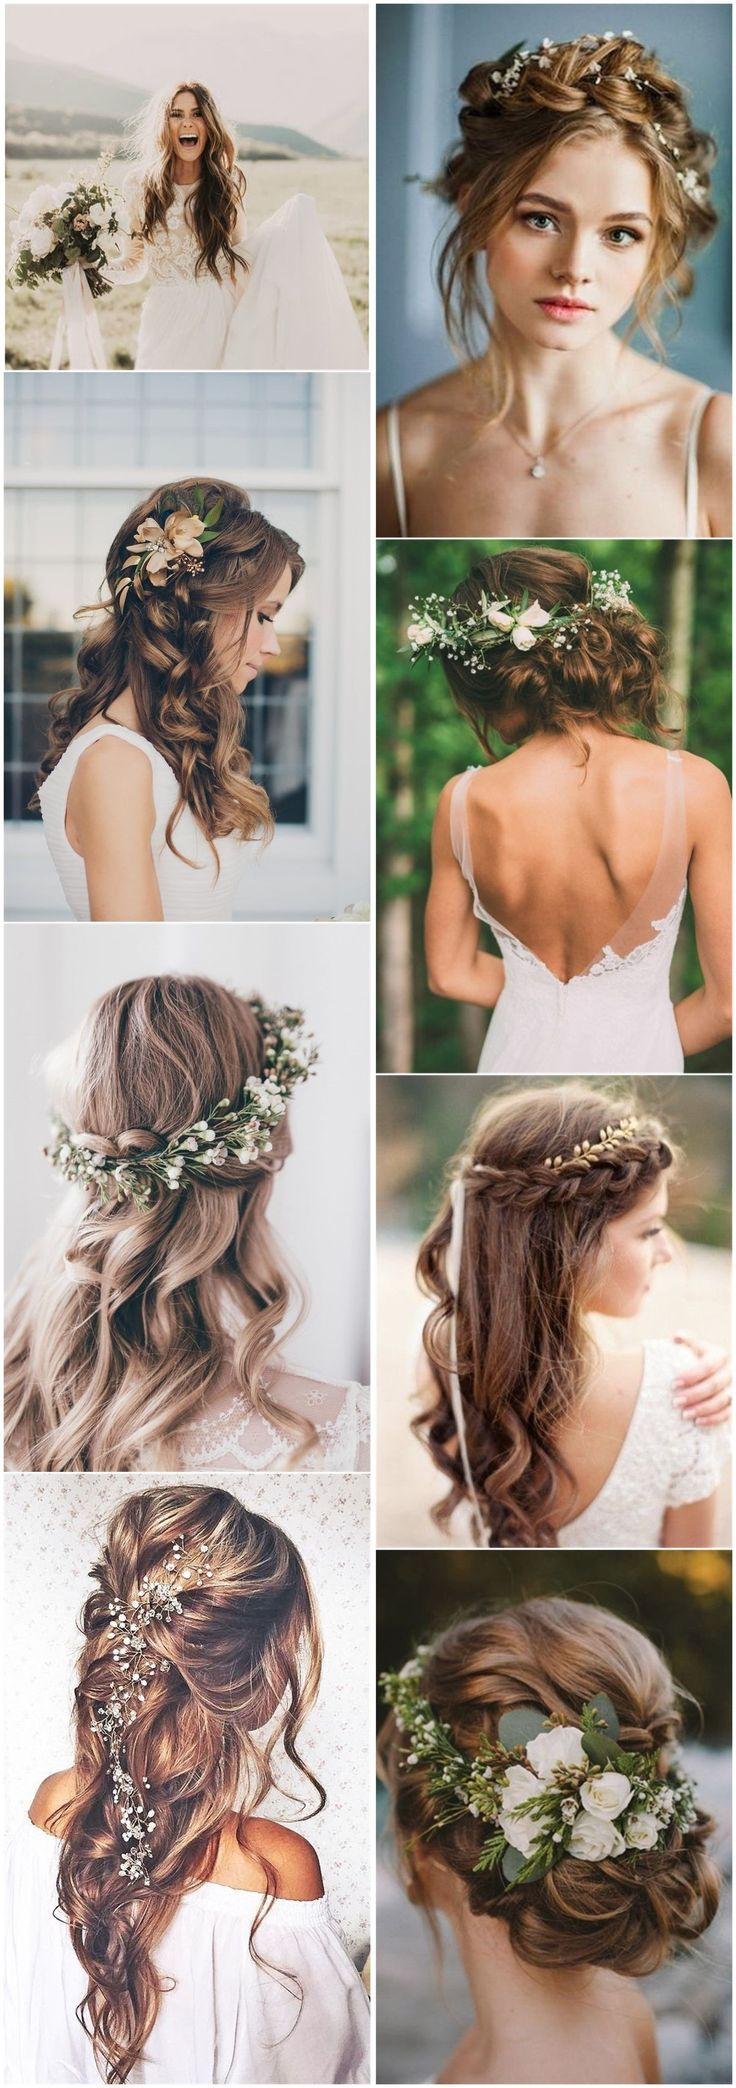 21 Inspiring Boho Bridal Hairstyles Concepts to Steal